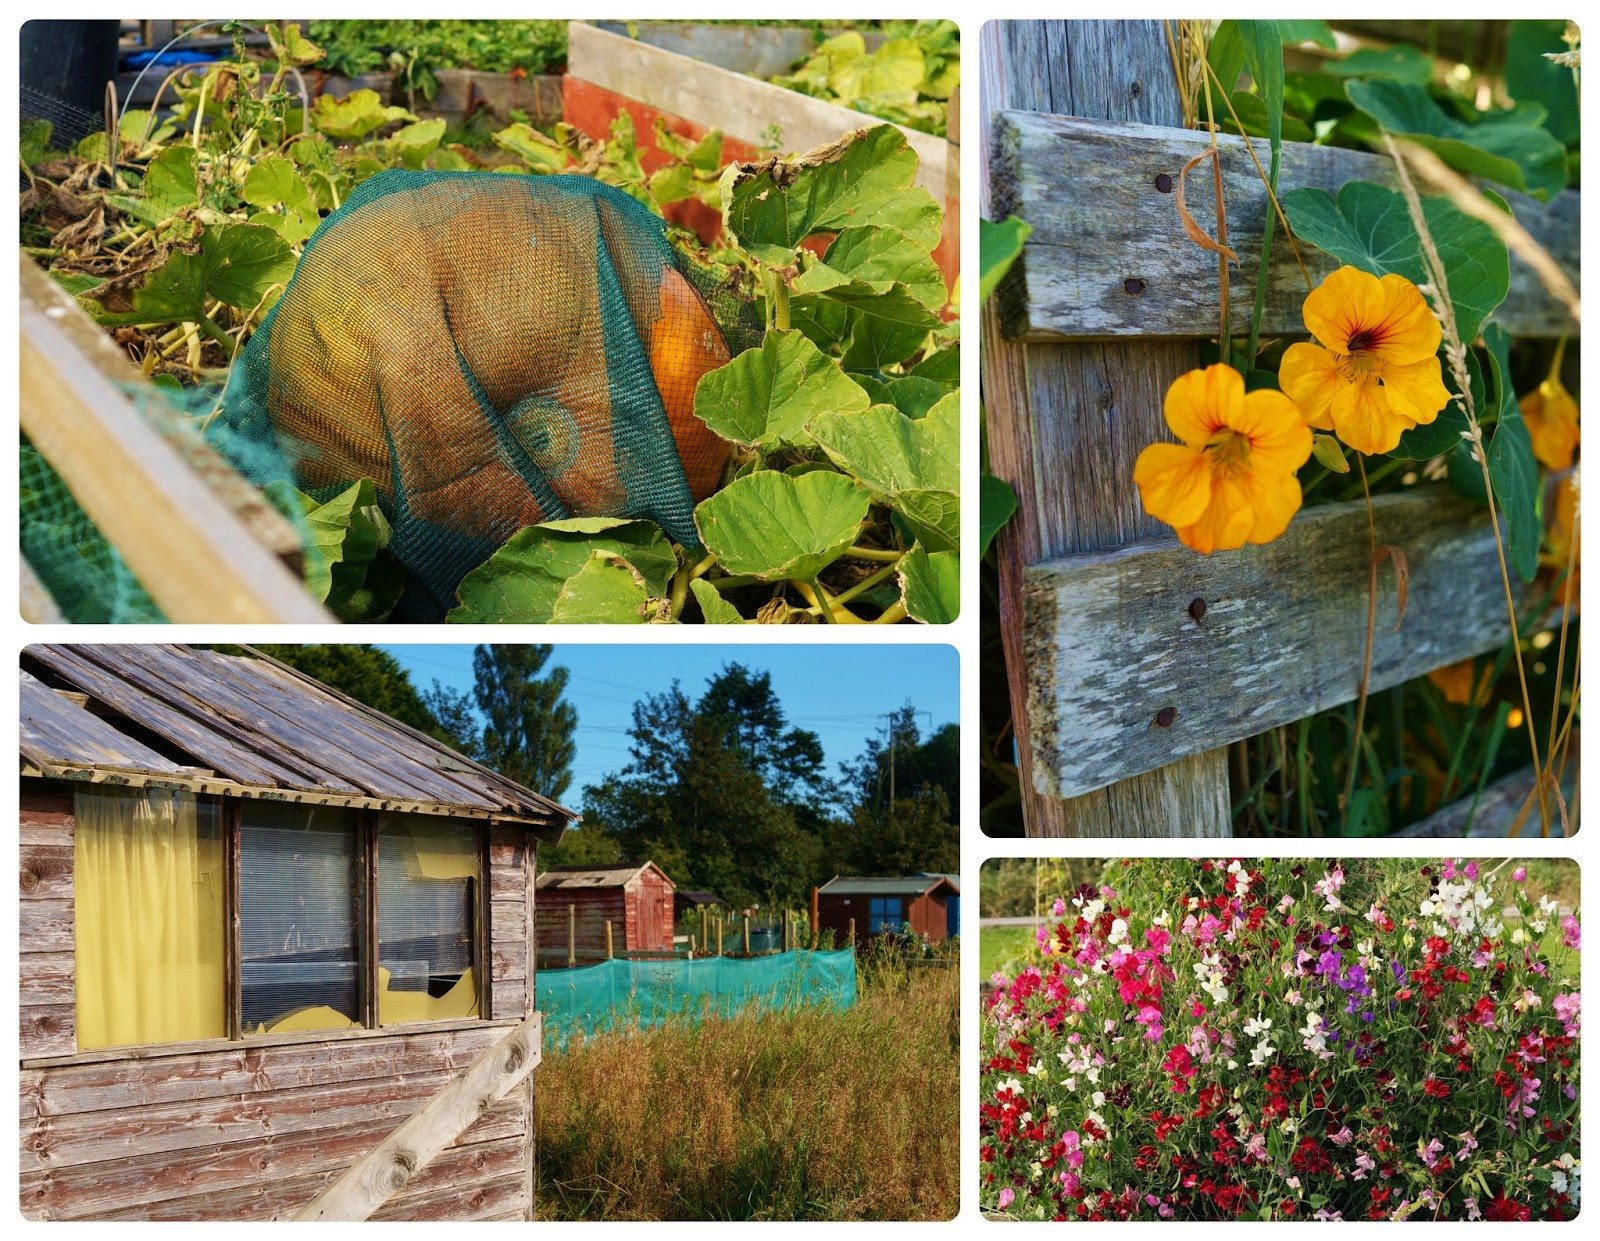 'growourown.blogspot.com' ~ an allotment blog